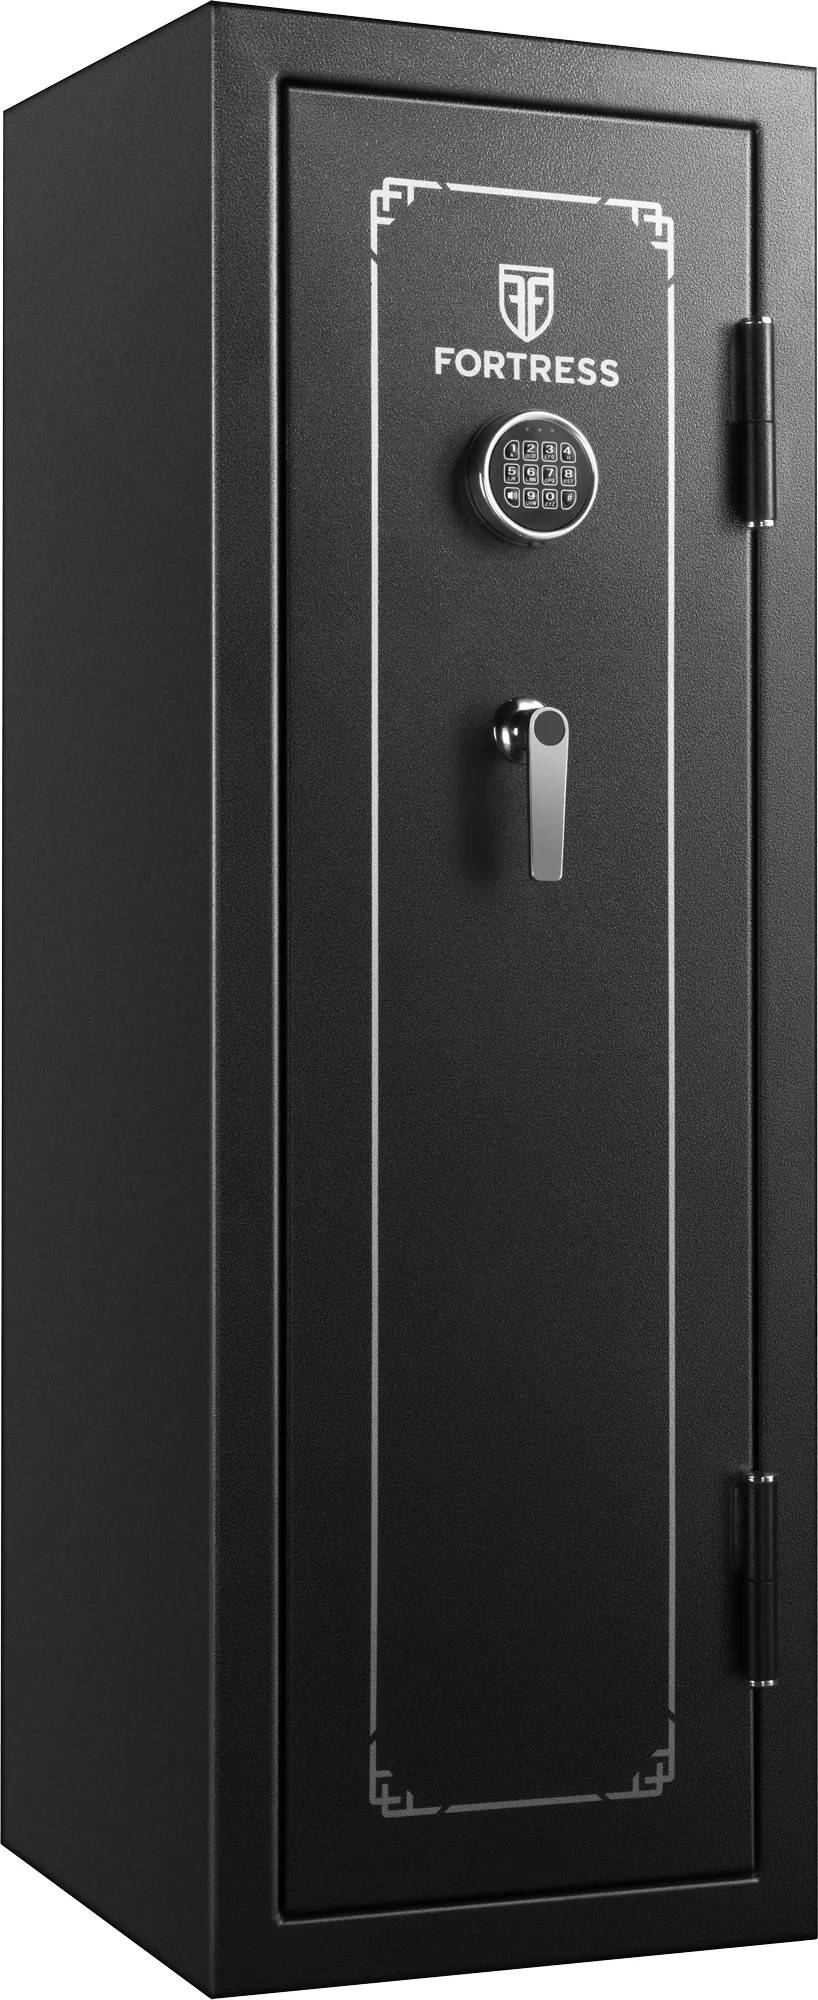 Fortress 14 Gun Fire Safe With Electronic Lock Dick' Sporting Goods